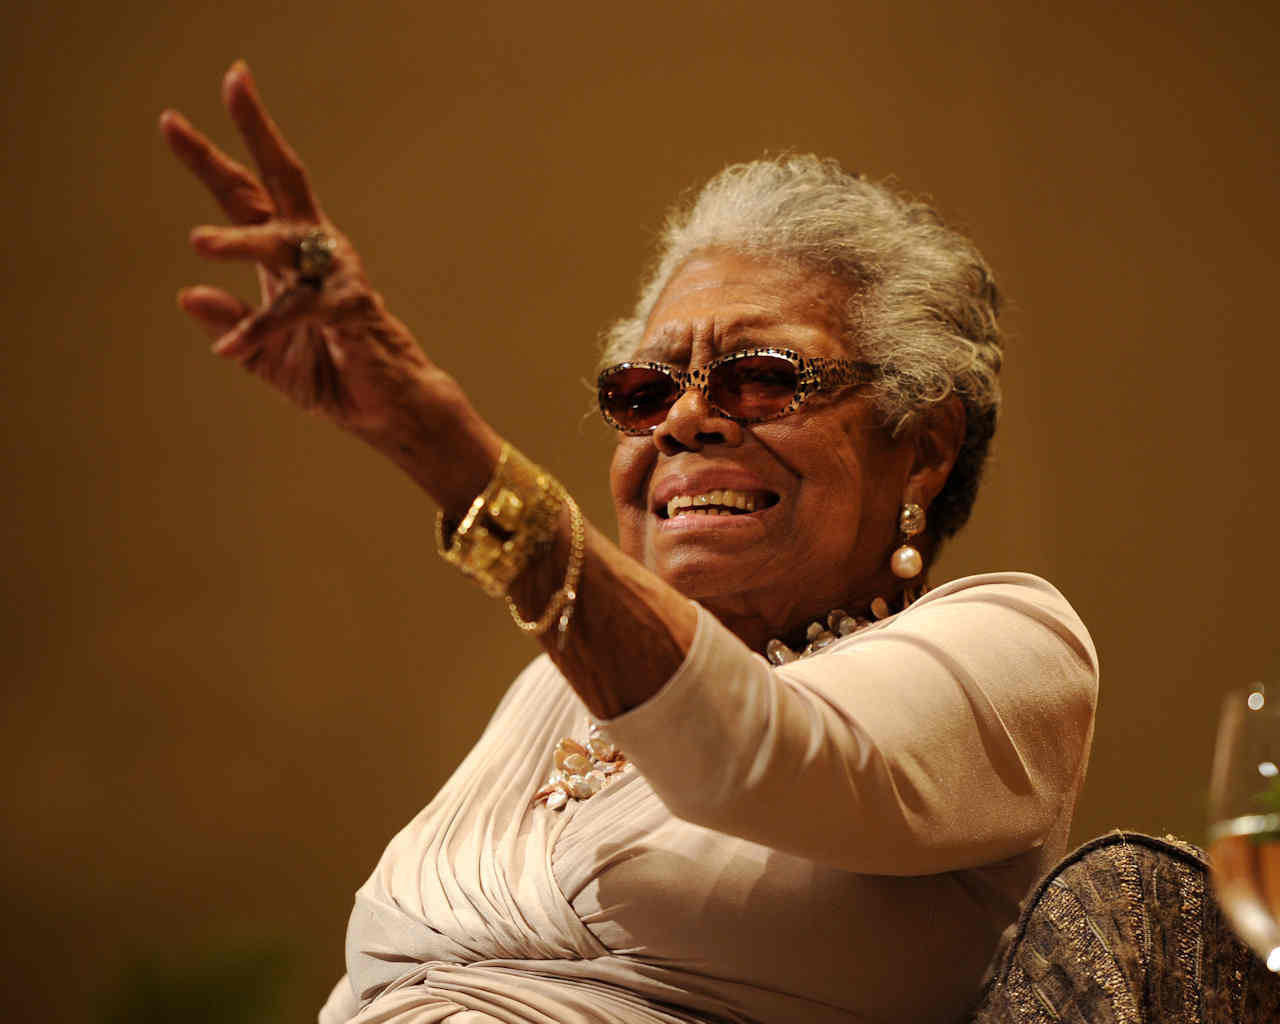 <div class='meta'><div class='origin-logo' data-origin='none'></div><span class='caption-text' data-credit='(Photo by Jeff Daly/Invision/AP)'>Maya Angelou speaks on race relations at Congregation B'nai Israel and Ebenezer Baptist Church on January 16, 2014 in Boca Raton, Florida. Angelou died on May 28 at the age of 86.</span></div>